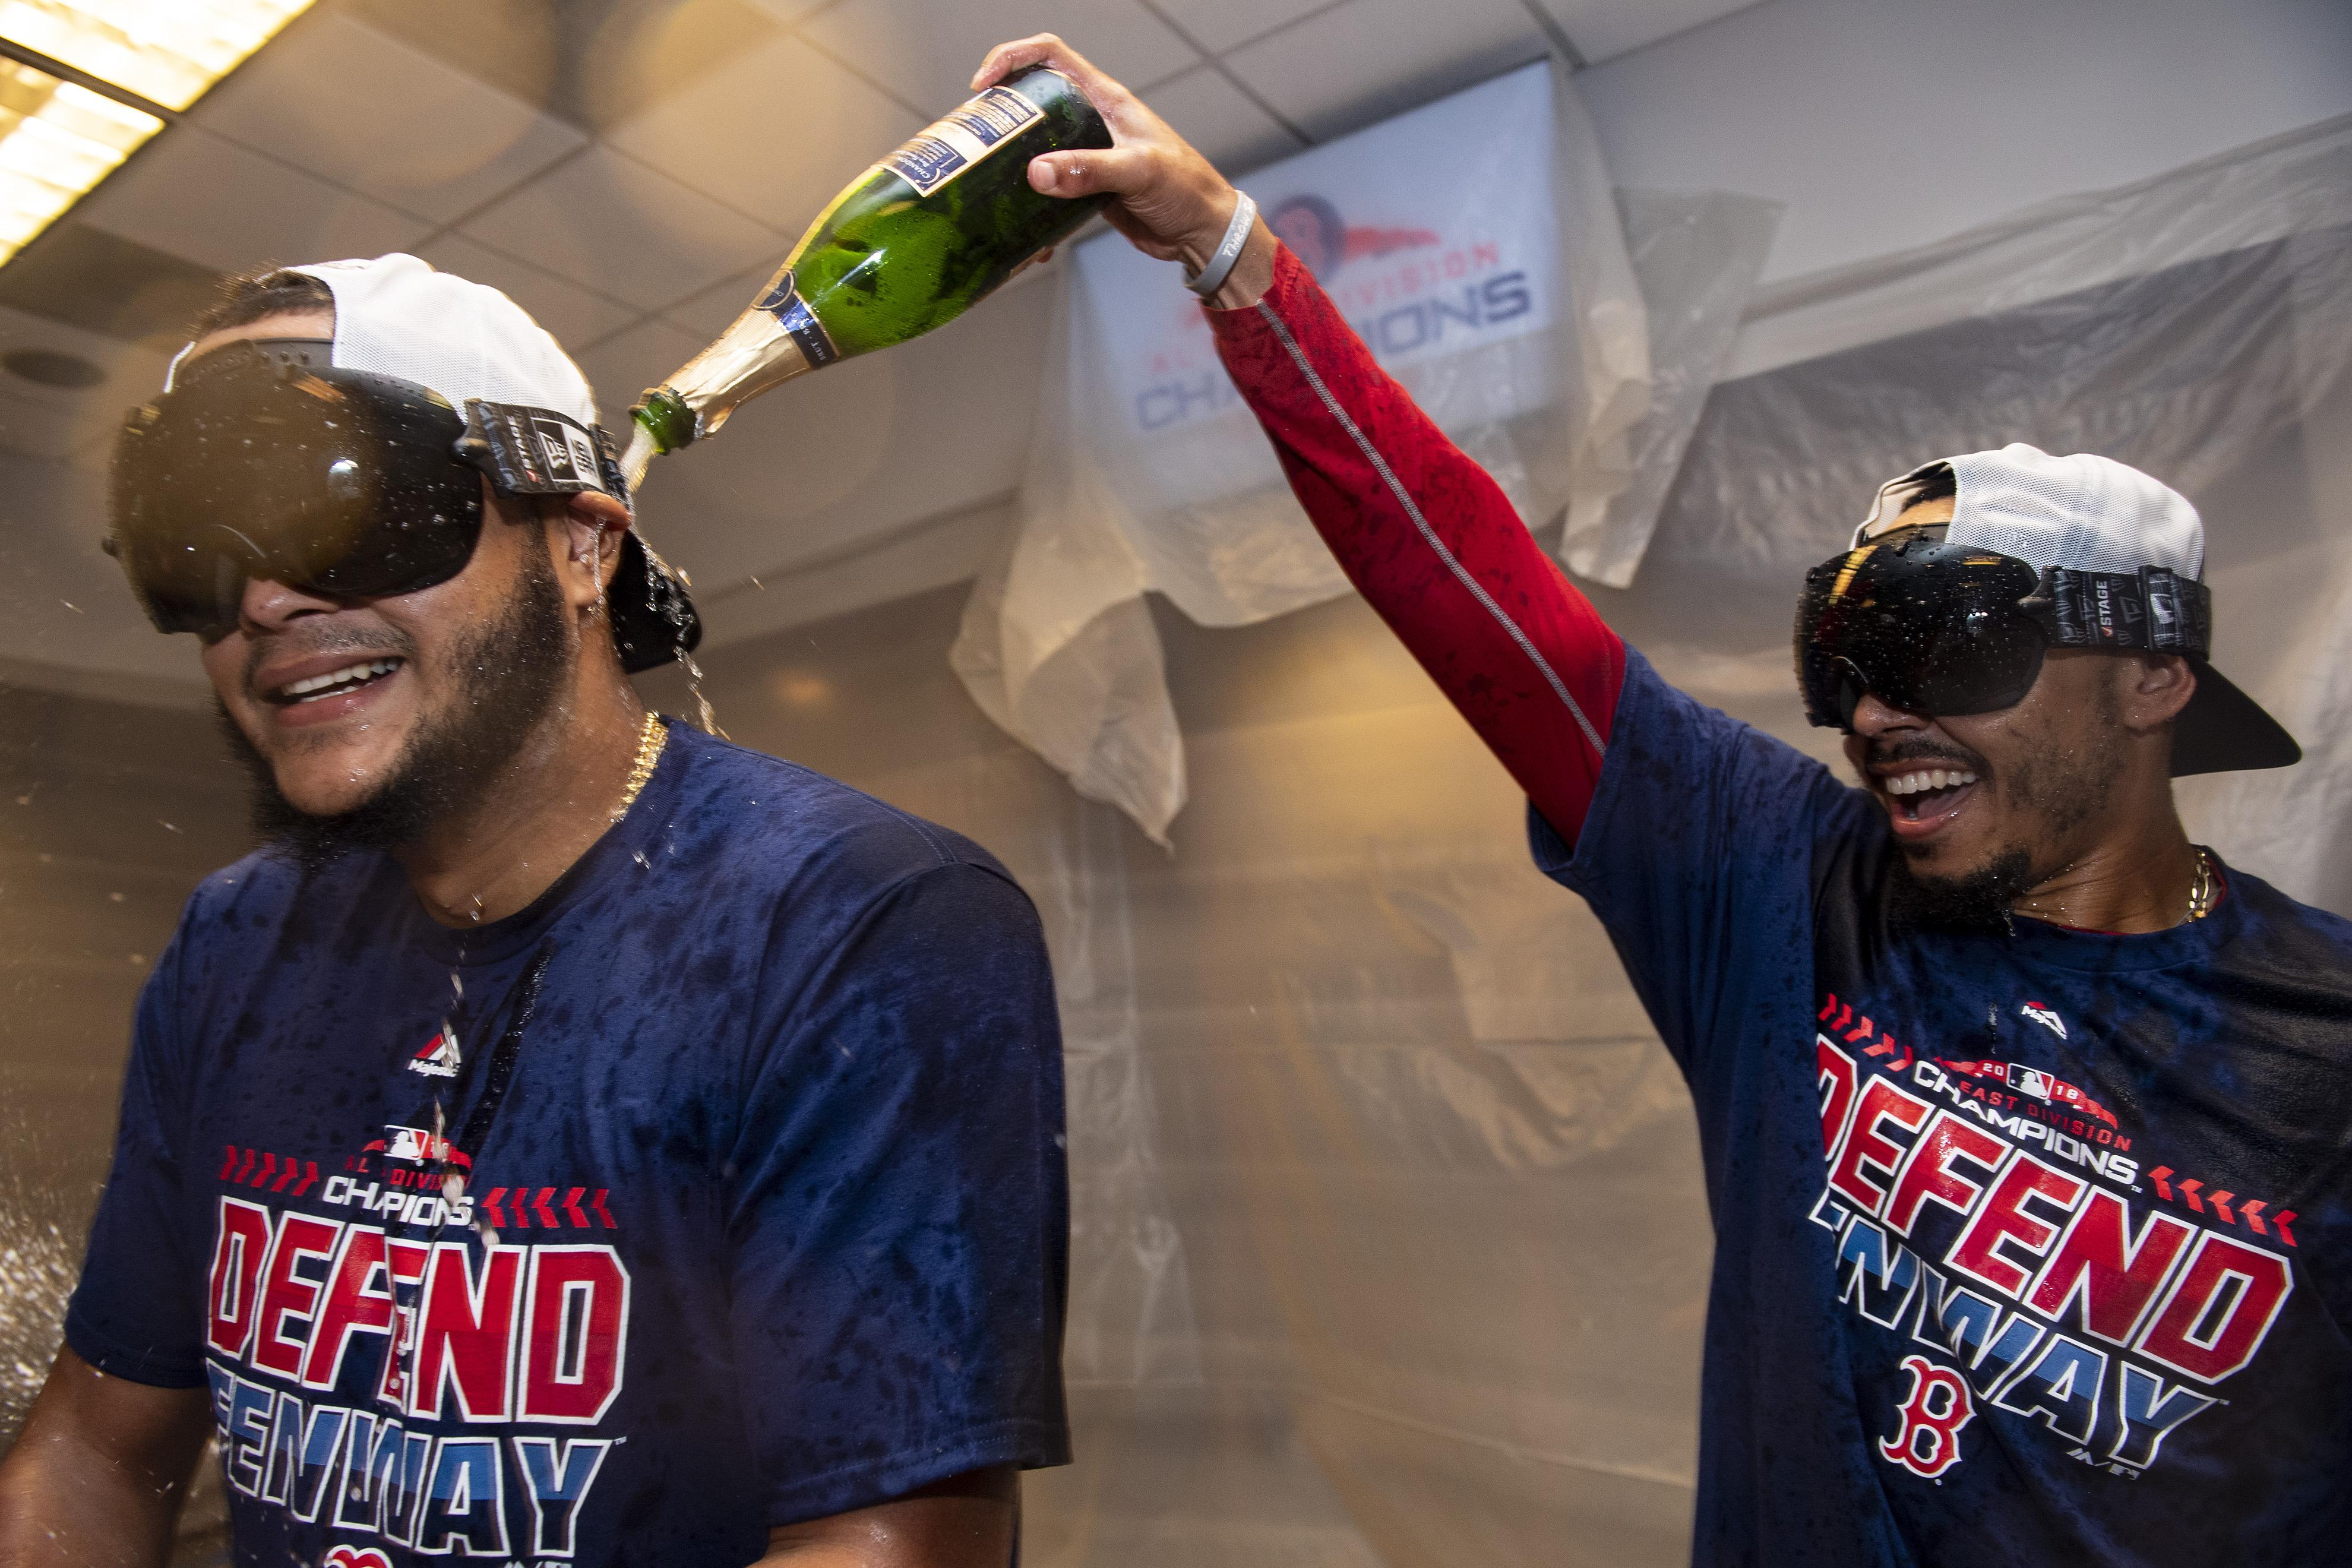 The Boston Red Sox have never finished in first place three years in a row